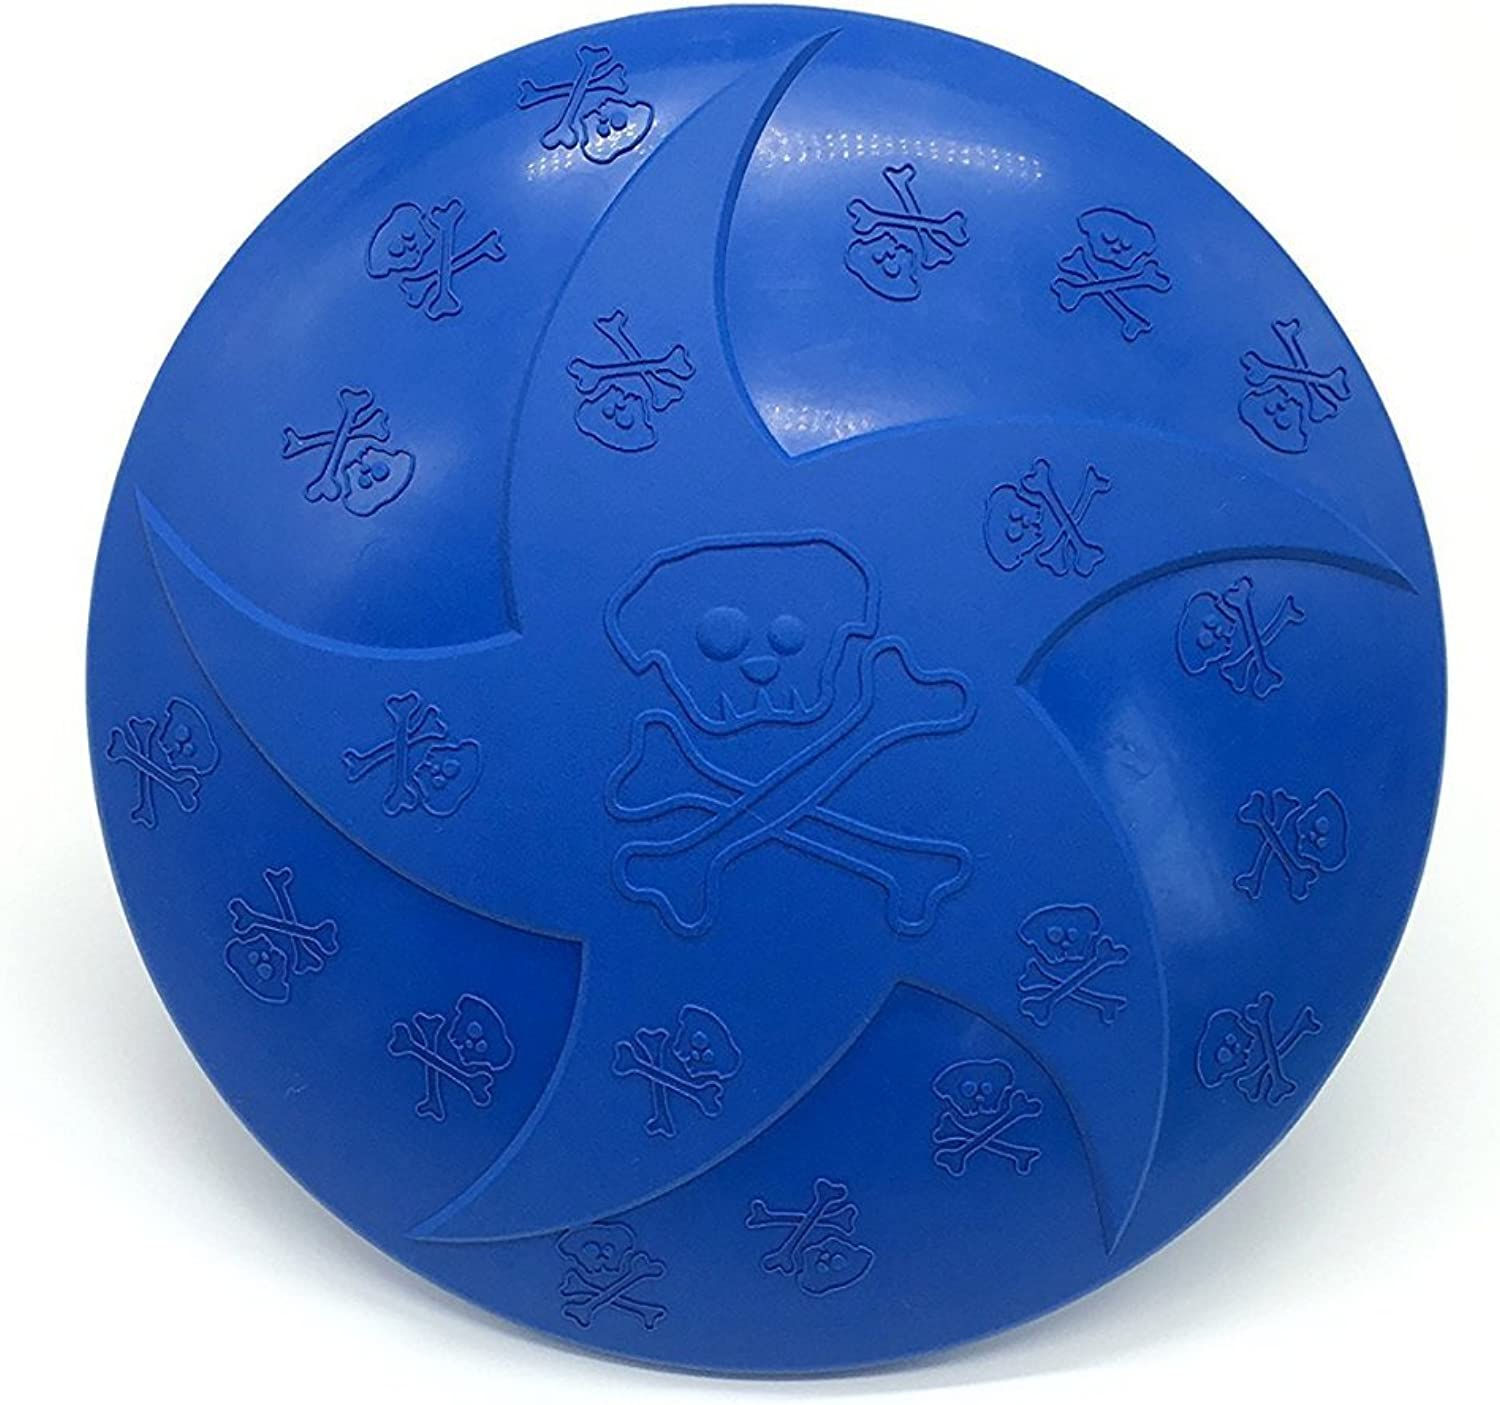 Frisbee Pet Flying Disc Dog Toy Rough Play Outdoor Training